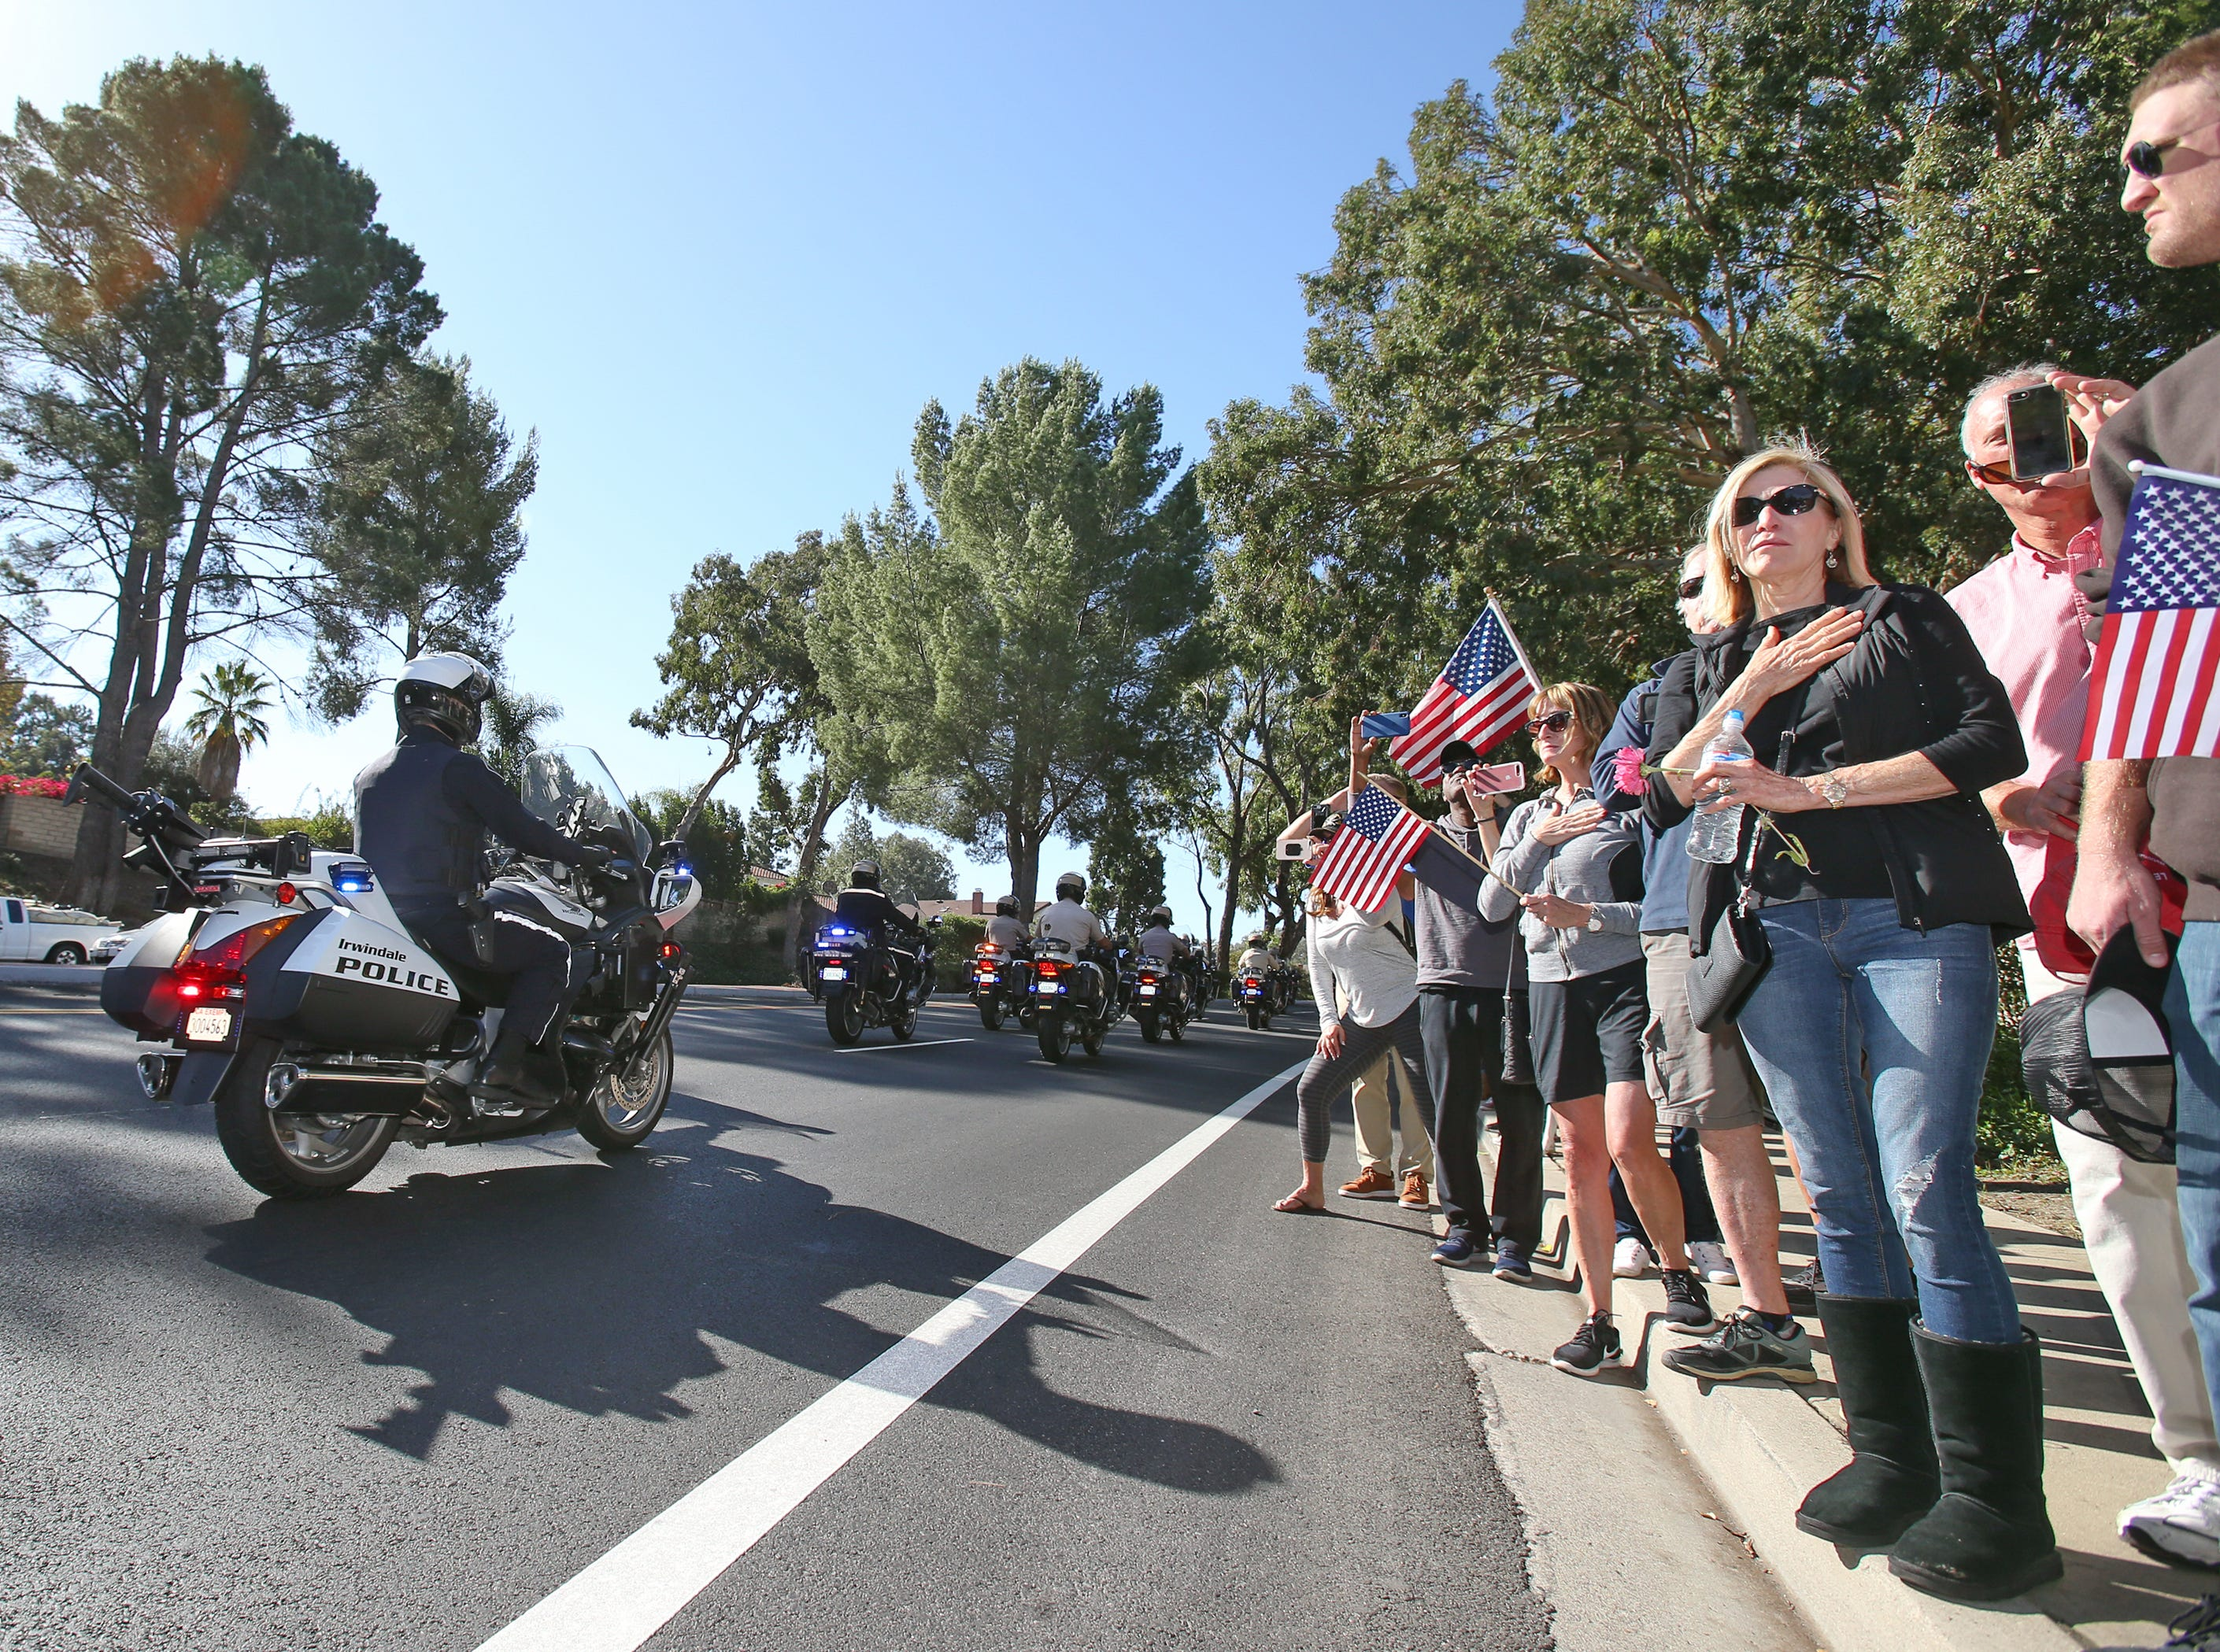 Members from the community pay their respects to Ventura County Sheriff Sgt. Ron Helus as procession leaves Los Robles Hospital in Thousand Oaks. Helus was killed inside the Borderline Bar and Grill in Thousand Oaks late Wednesday, when 13 people died including the gunman in a mass shooting.